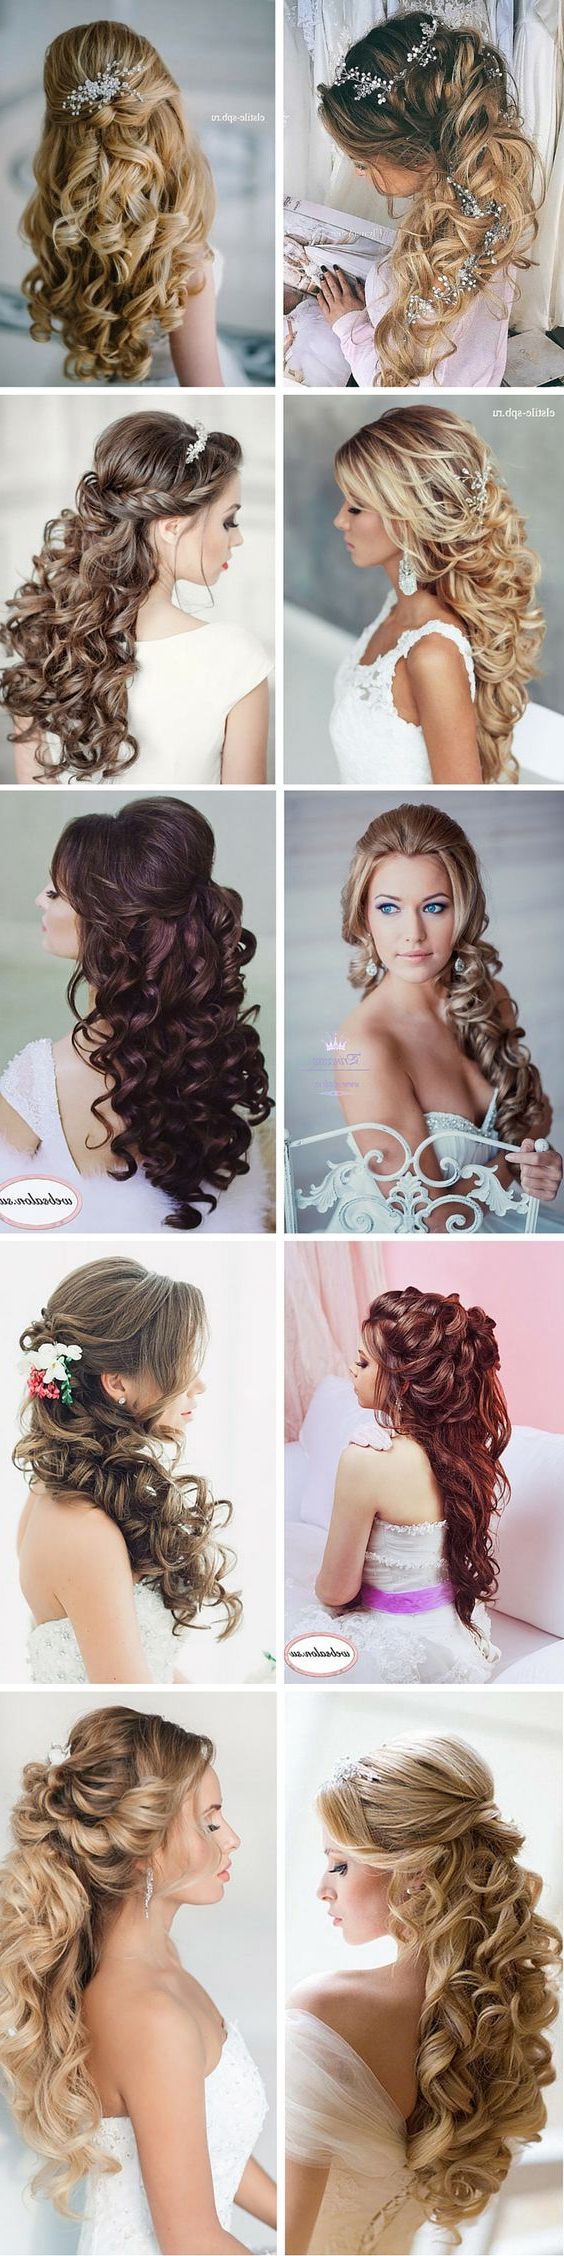 100 Romantic Long Wedding Hairstyles 2019 Curls Half Up Updos